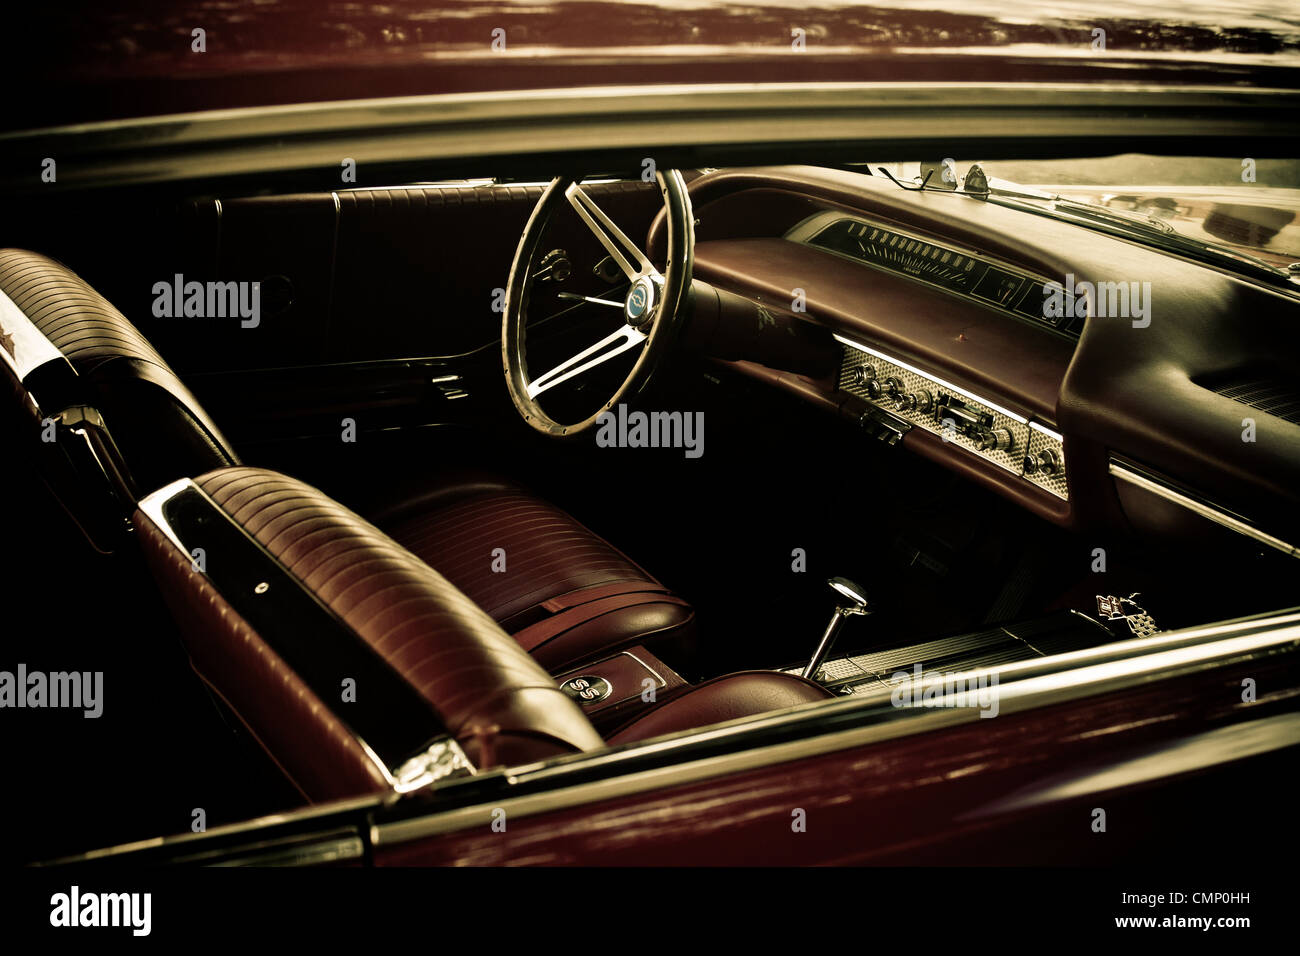 Moody image of classic car interior. - Stock Image